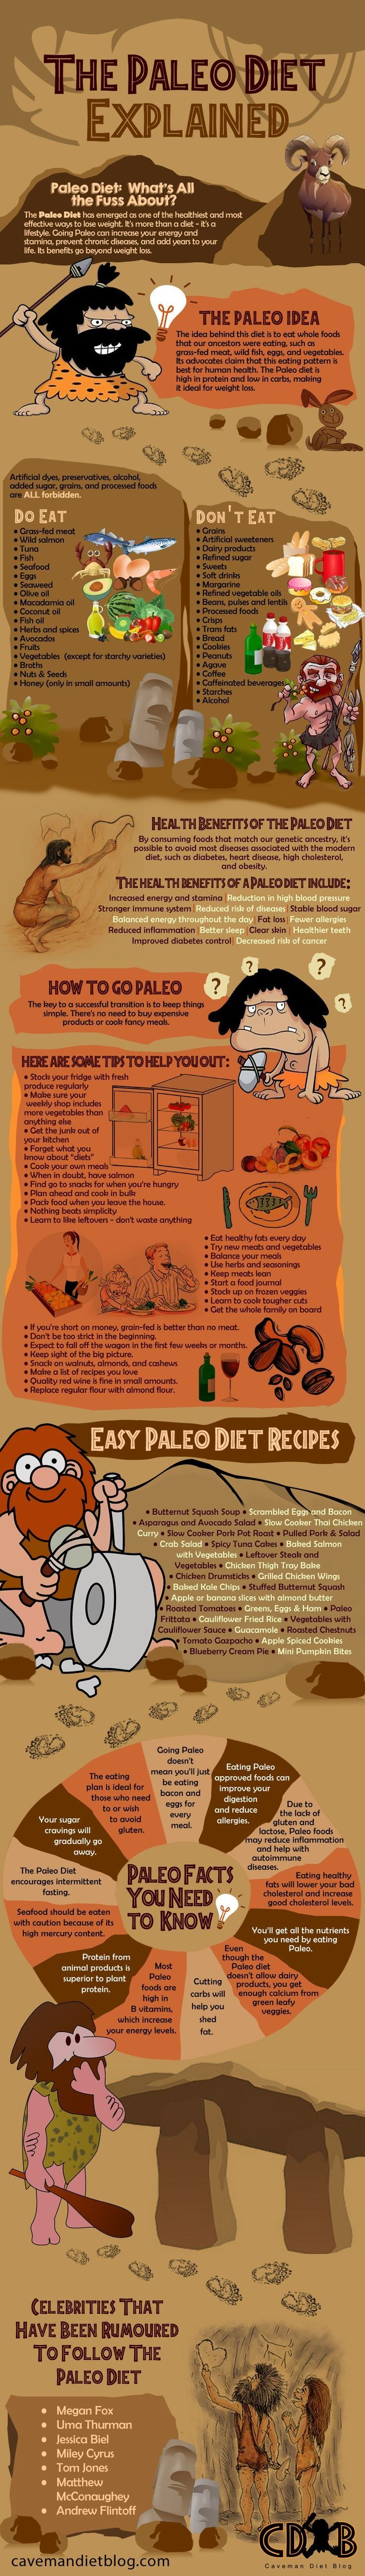 The Paleo Diet Explained - Fantastic infographic full of information about the\u2026 #weightlossrecipes